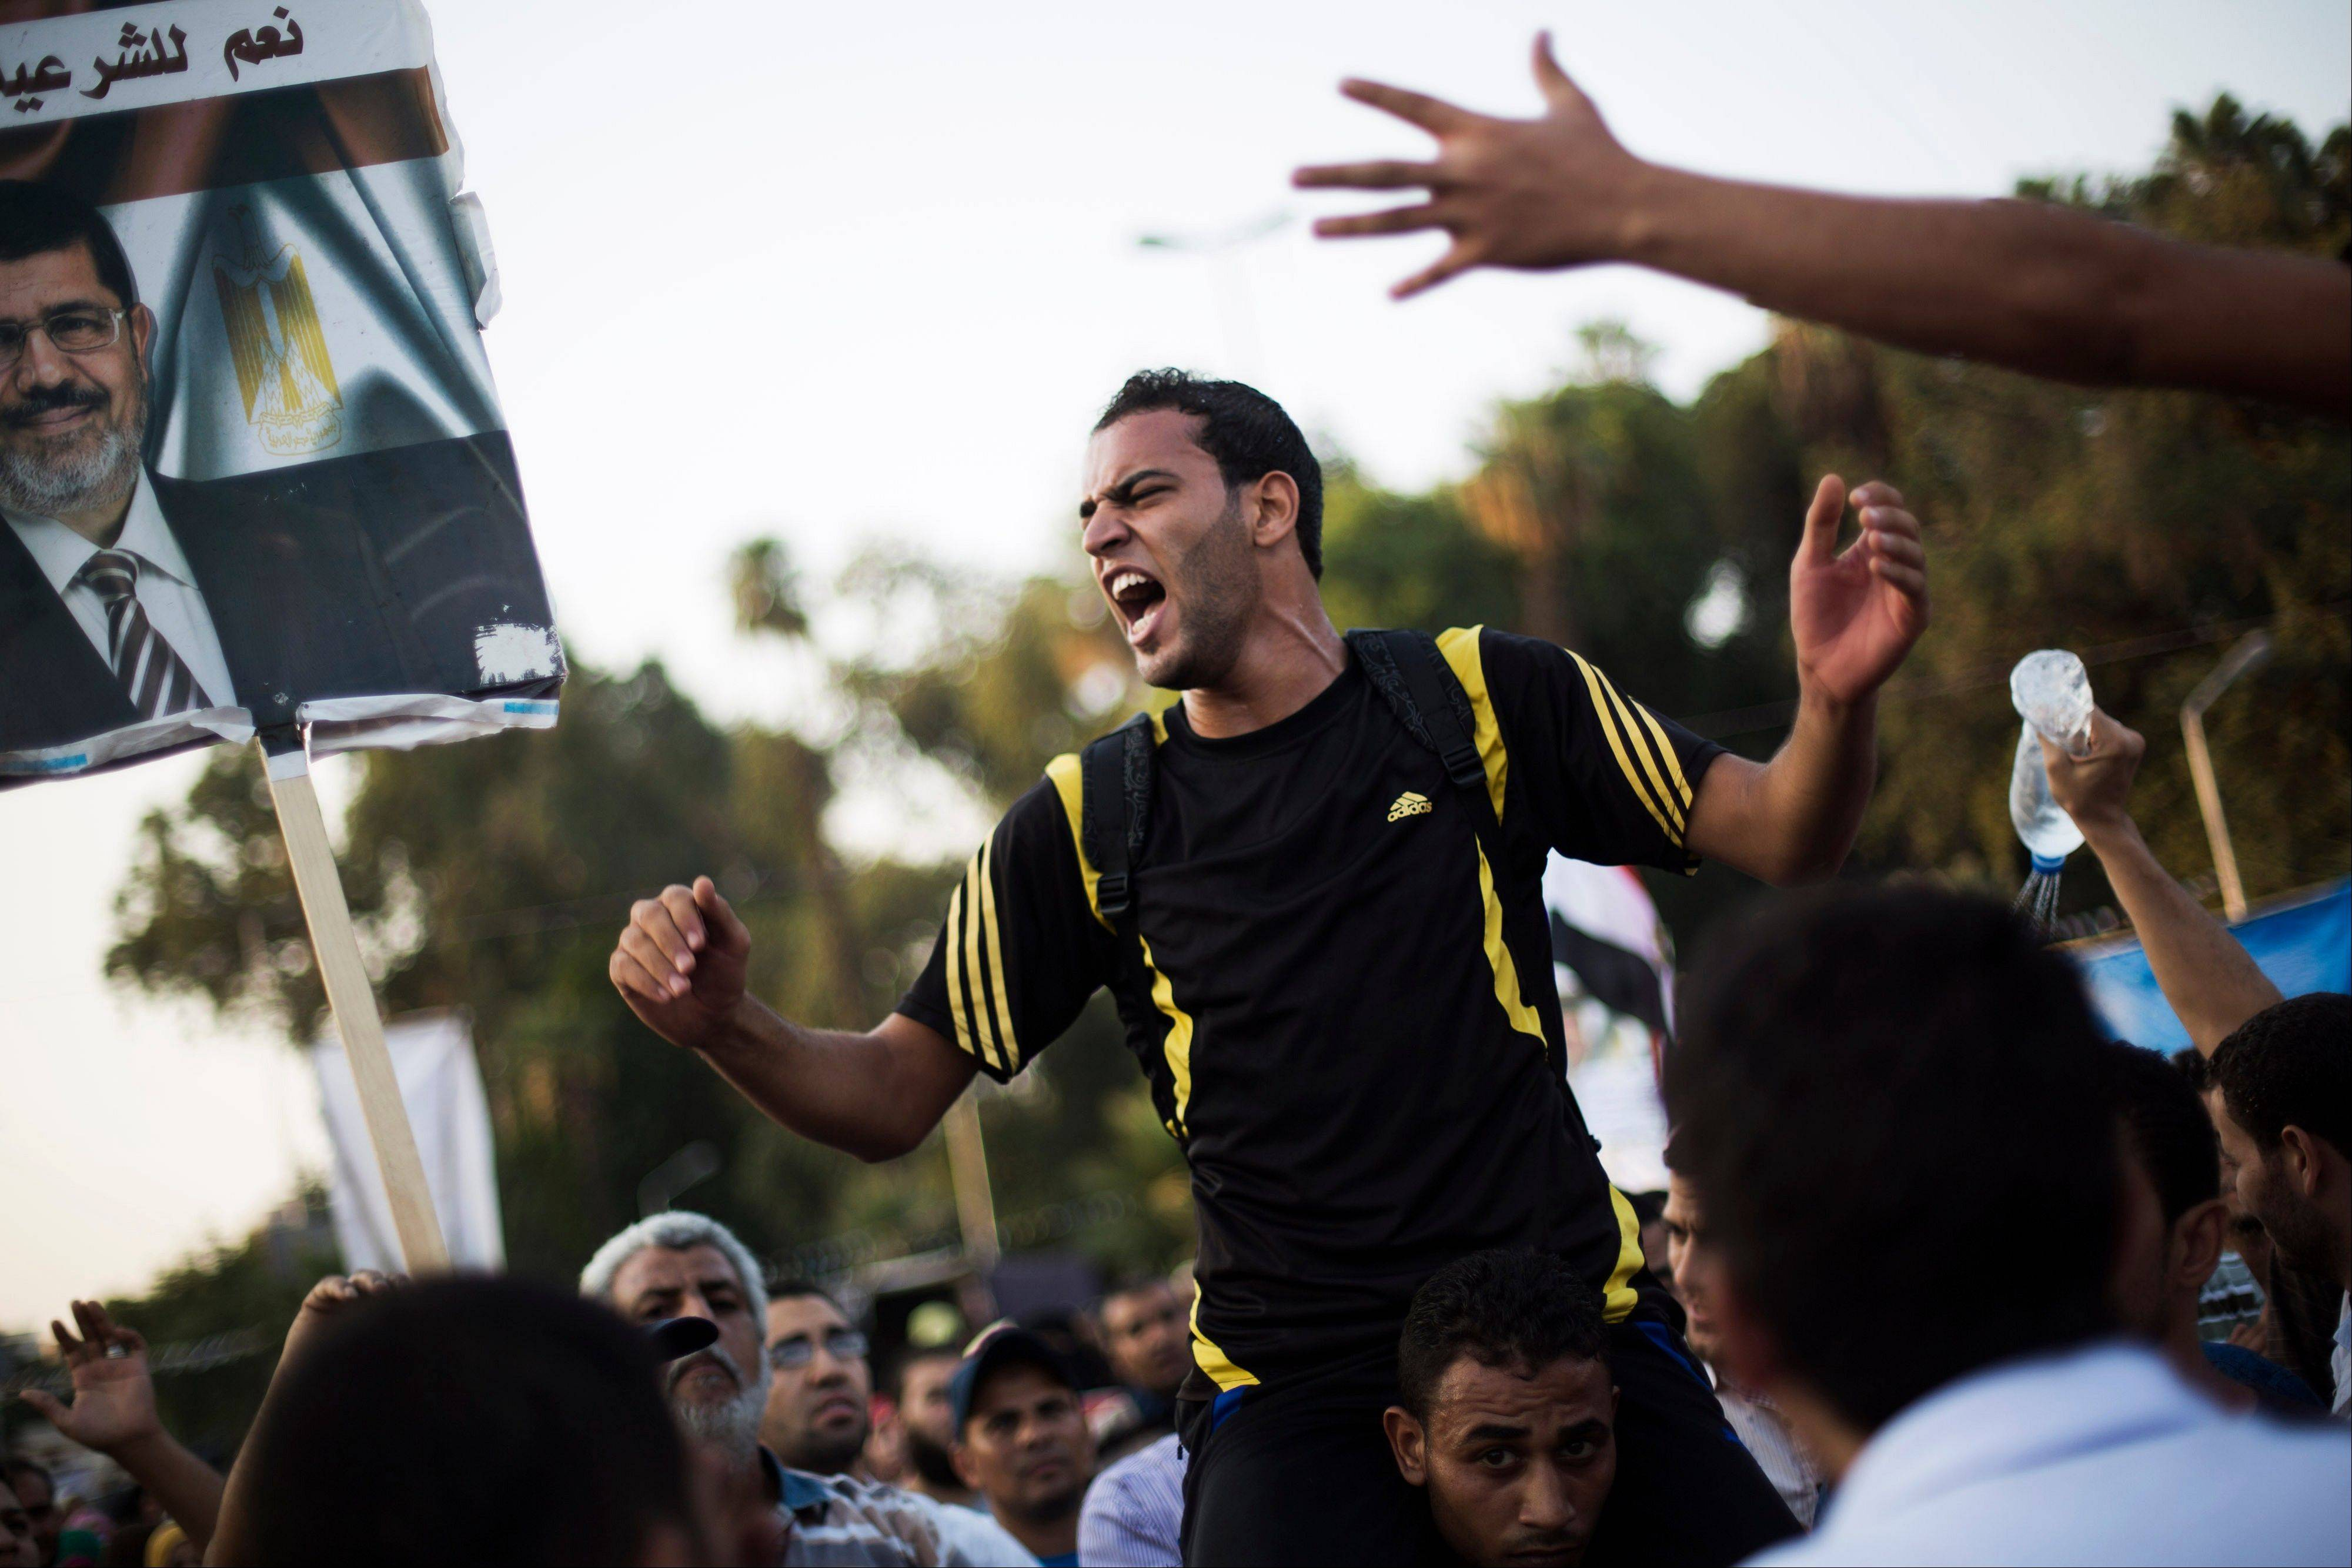 Supporters of Egypt's ousted President Mohammed Morsi chant slogans supporting the former leader during a protest